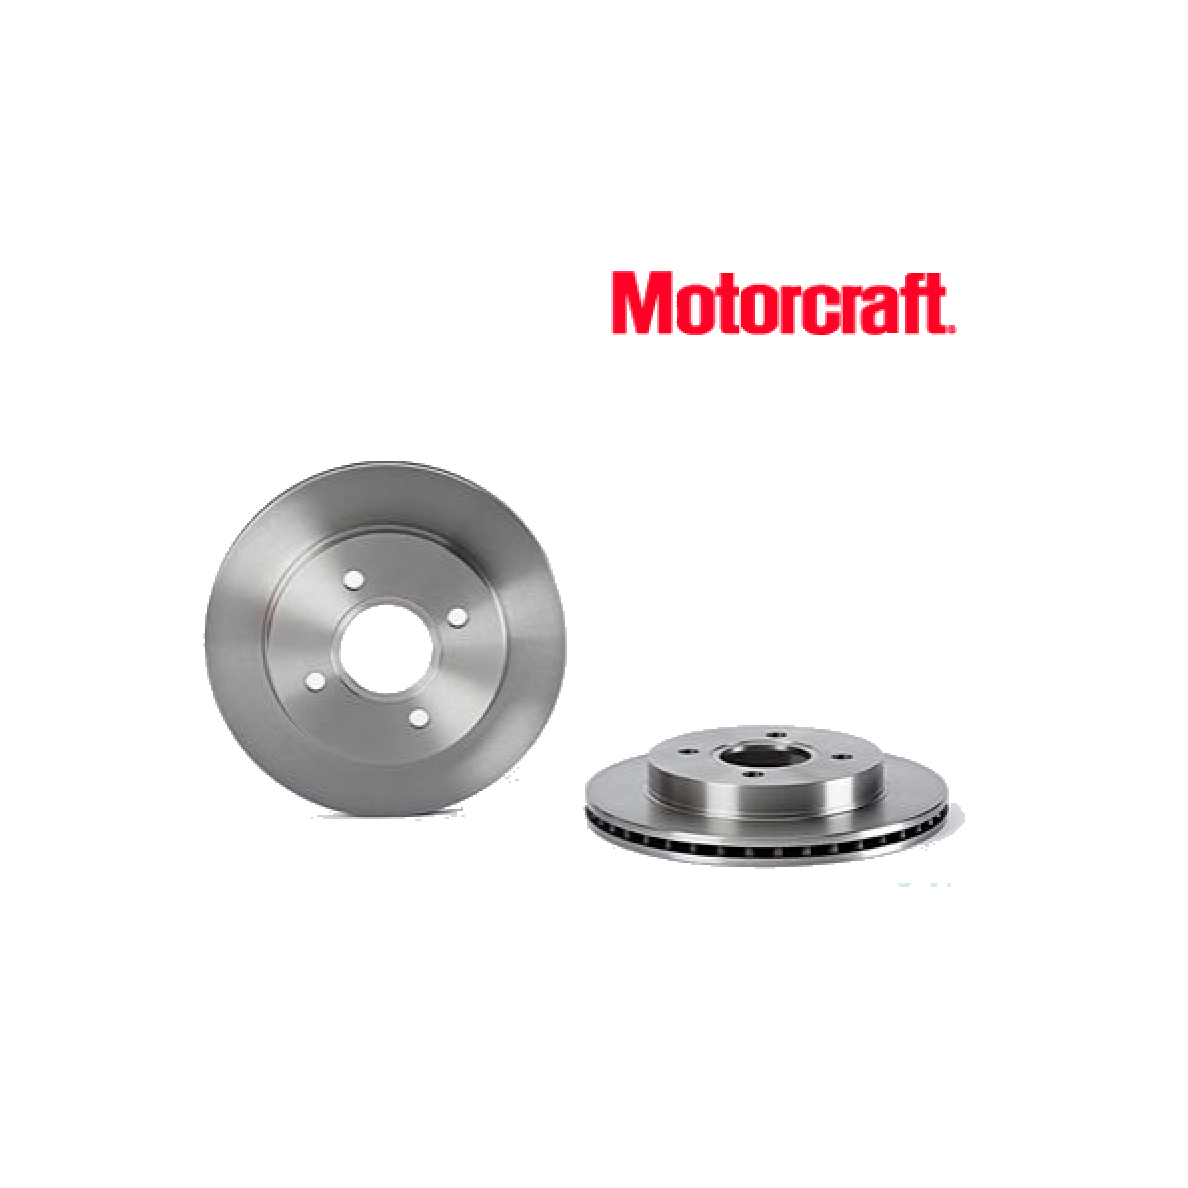 PAIR OF REAR BRAKE DISCS FORD COUGAR - MONDEO MOTORCRAFT FOR 1025911